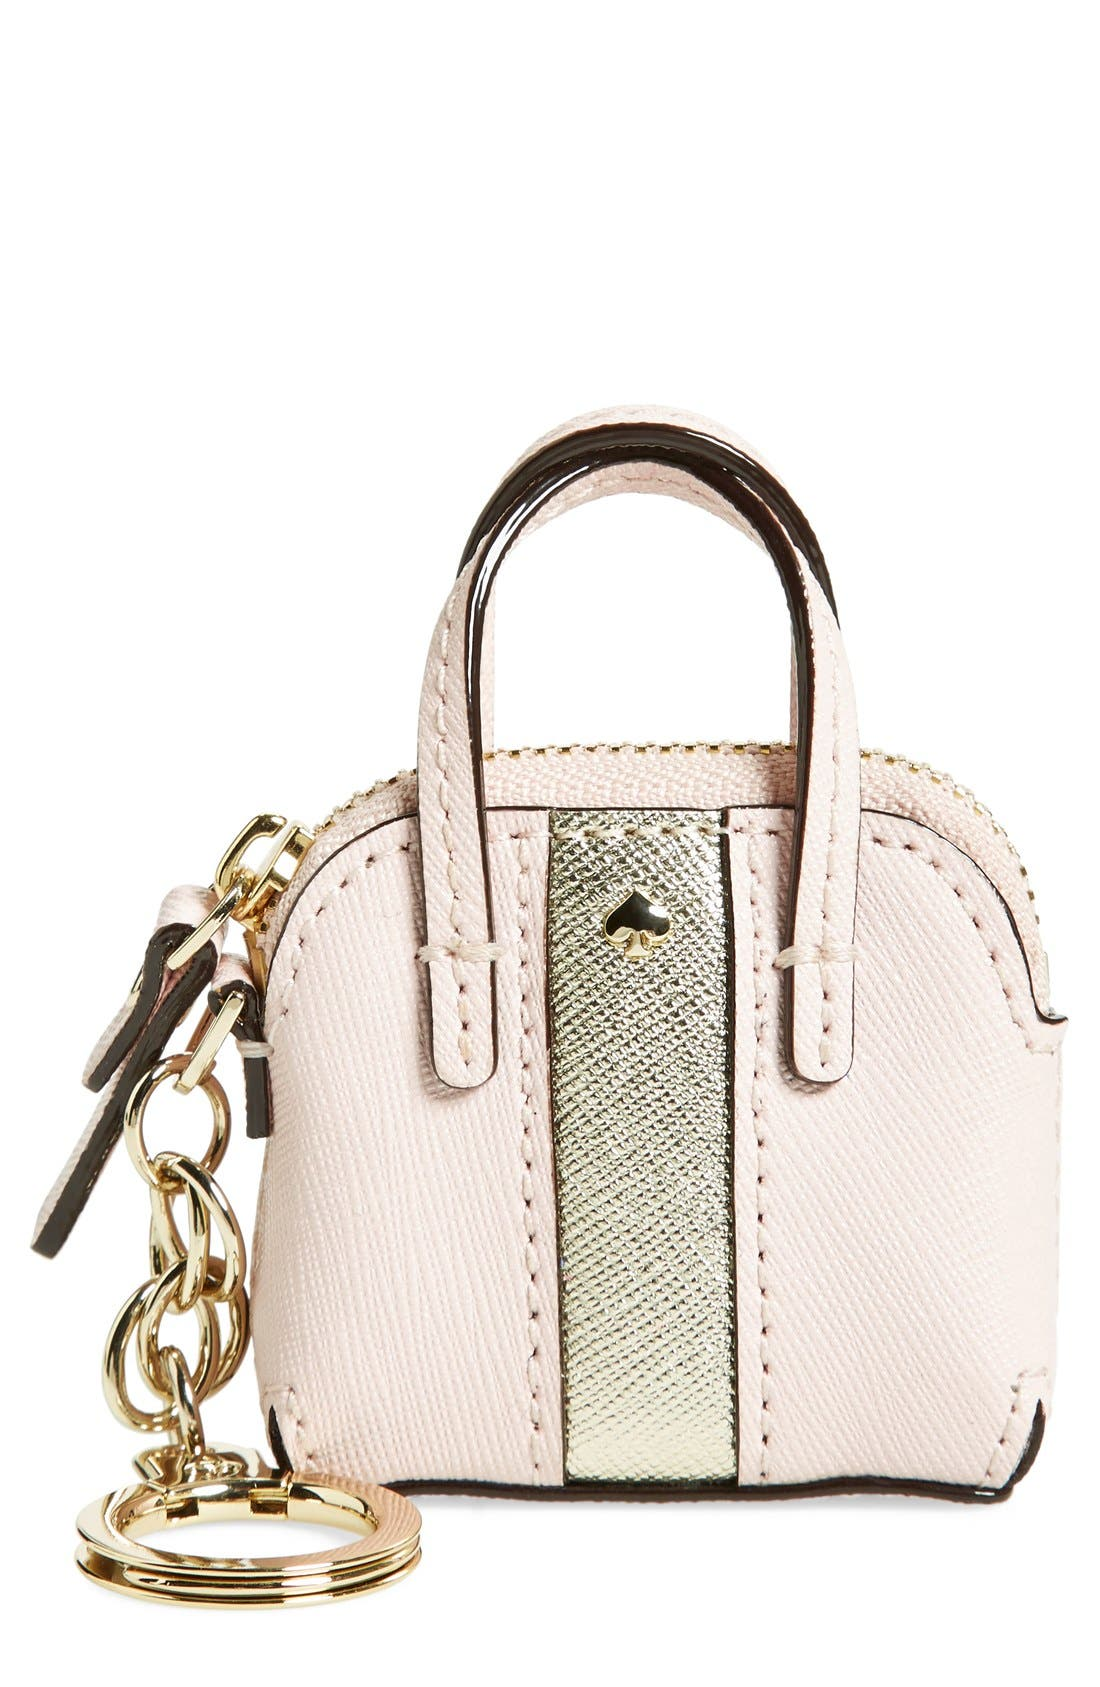 Alternate Image 1 Selected - kate spade new york 'racing stripe - maise' bag charm